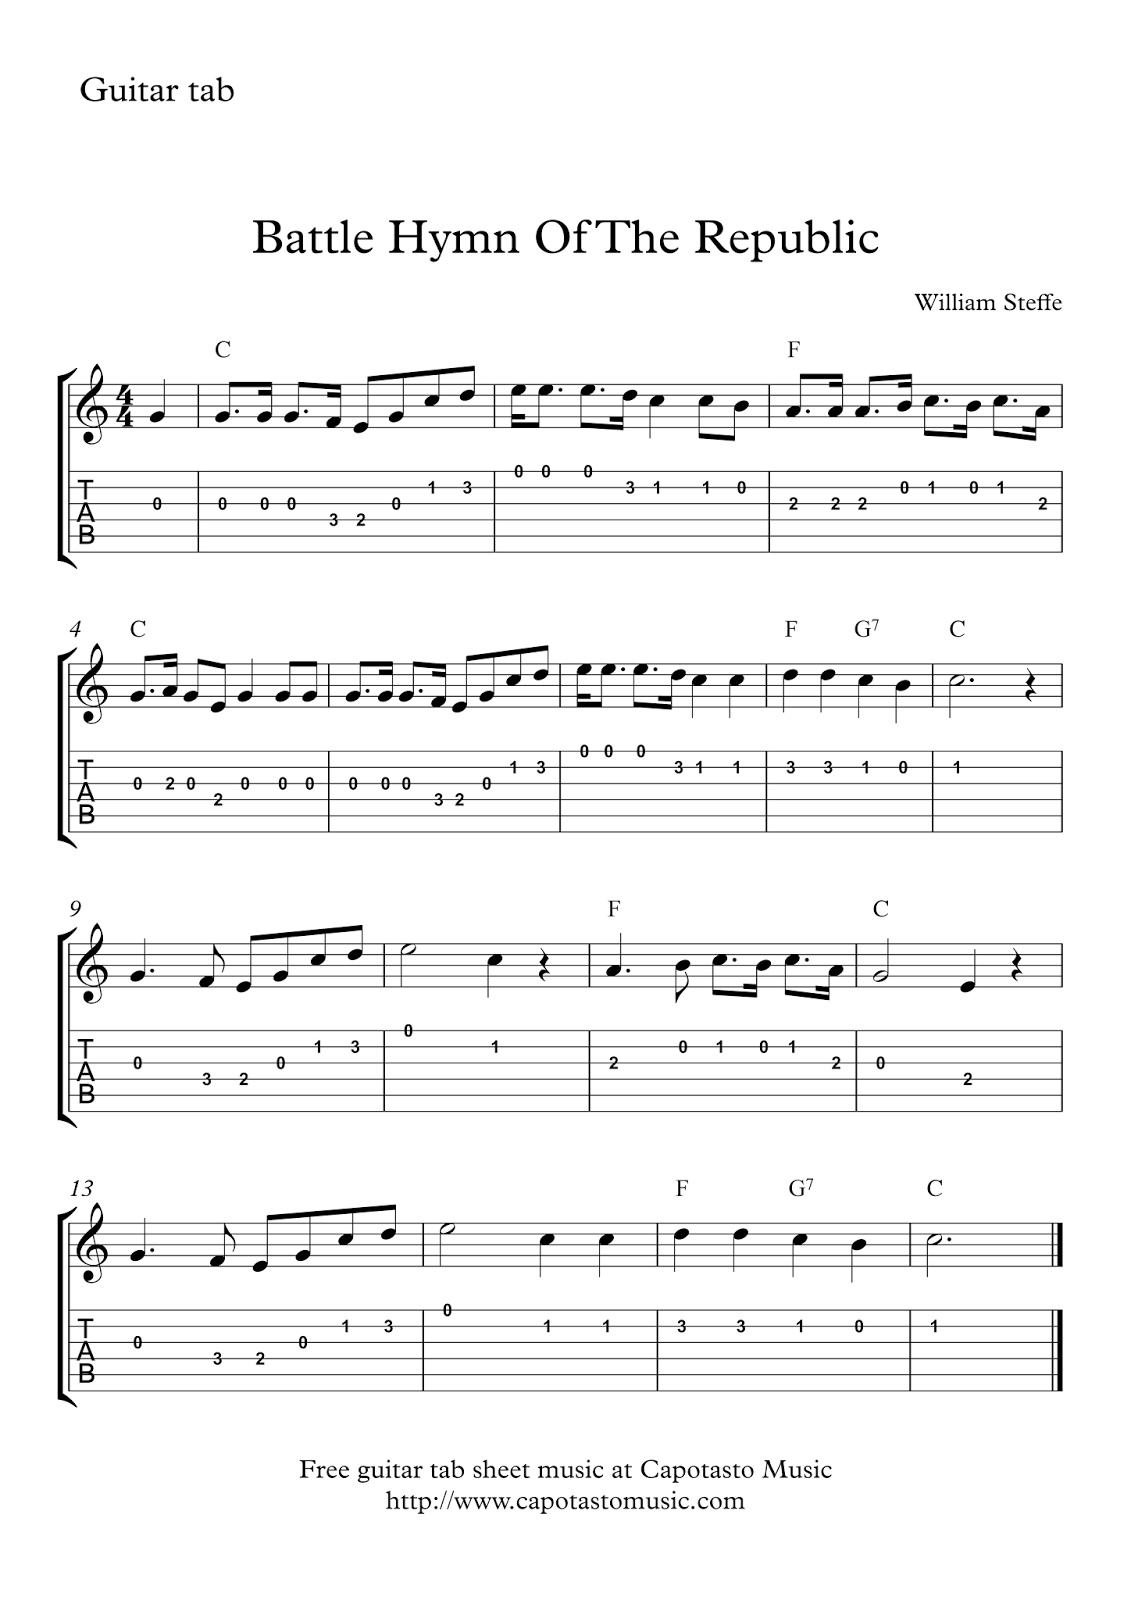 Battle Hymn Of The Republic Free Guitar Tab Sheet Music